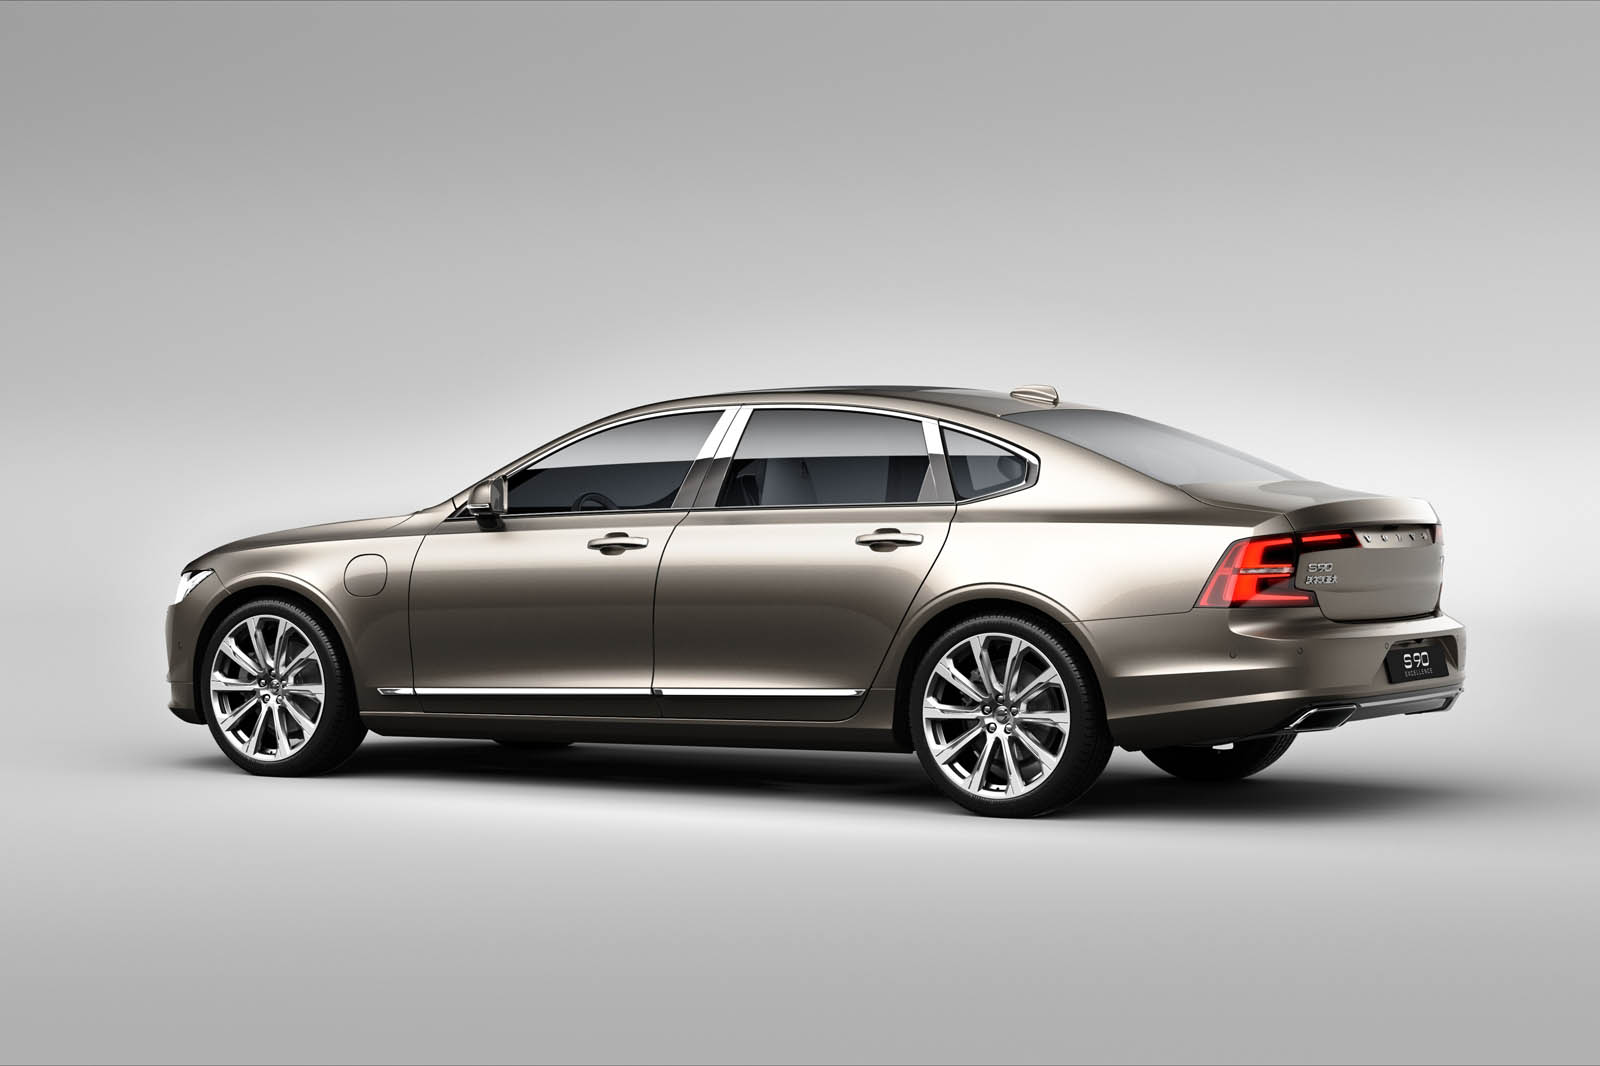 2018 Volvo S90 T8 Twin Engine Phev With 400hp Reaches